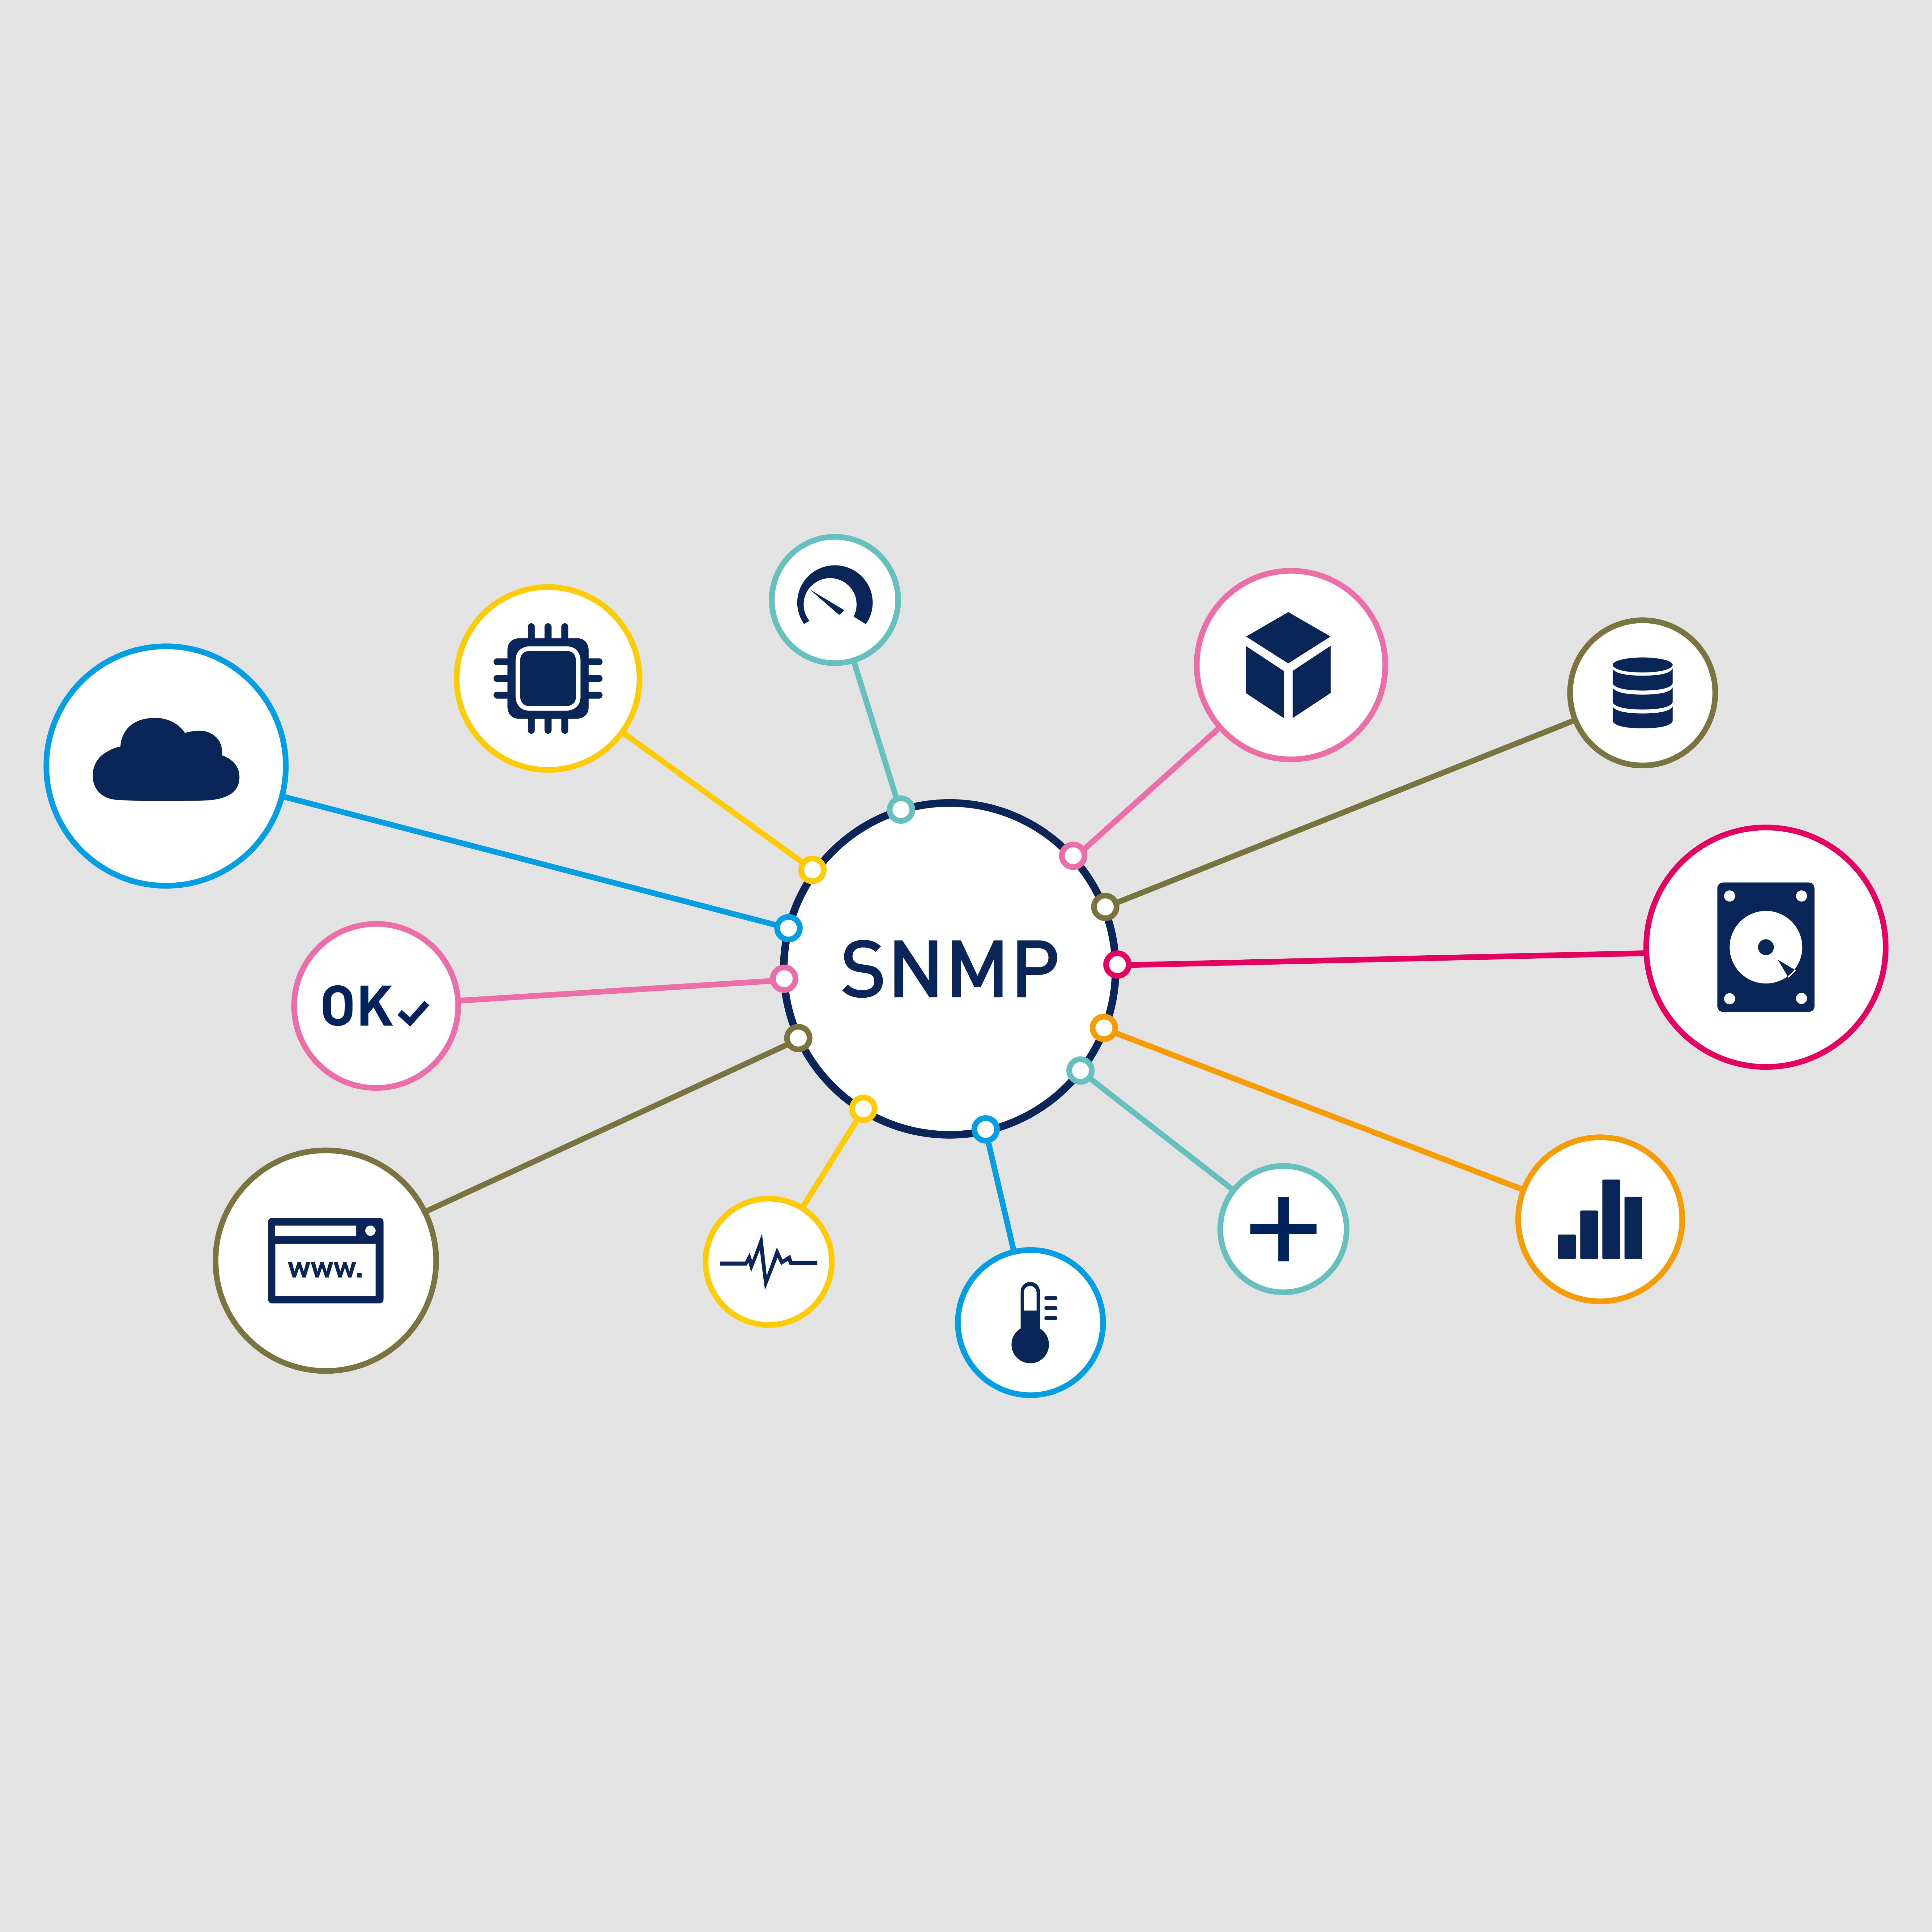 SNMP. A PILLAR IN IT: WHAT YOU MUST KNOW ABOUT ITS VERSIONS AND FCAPS #prtg #paessler #monitoring #snmp